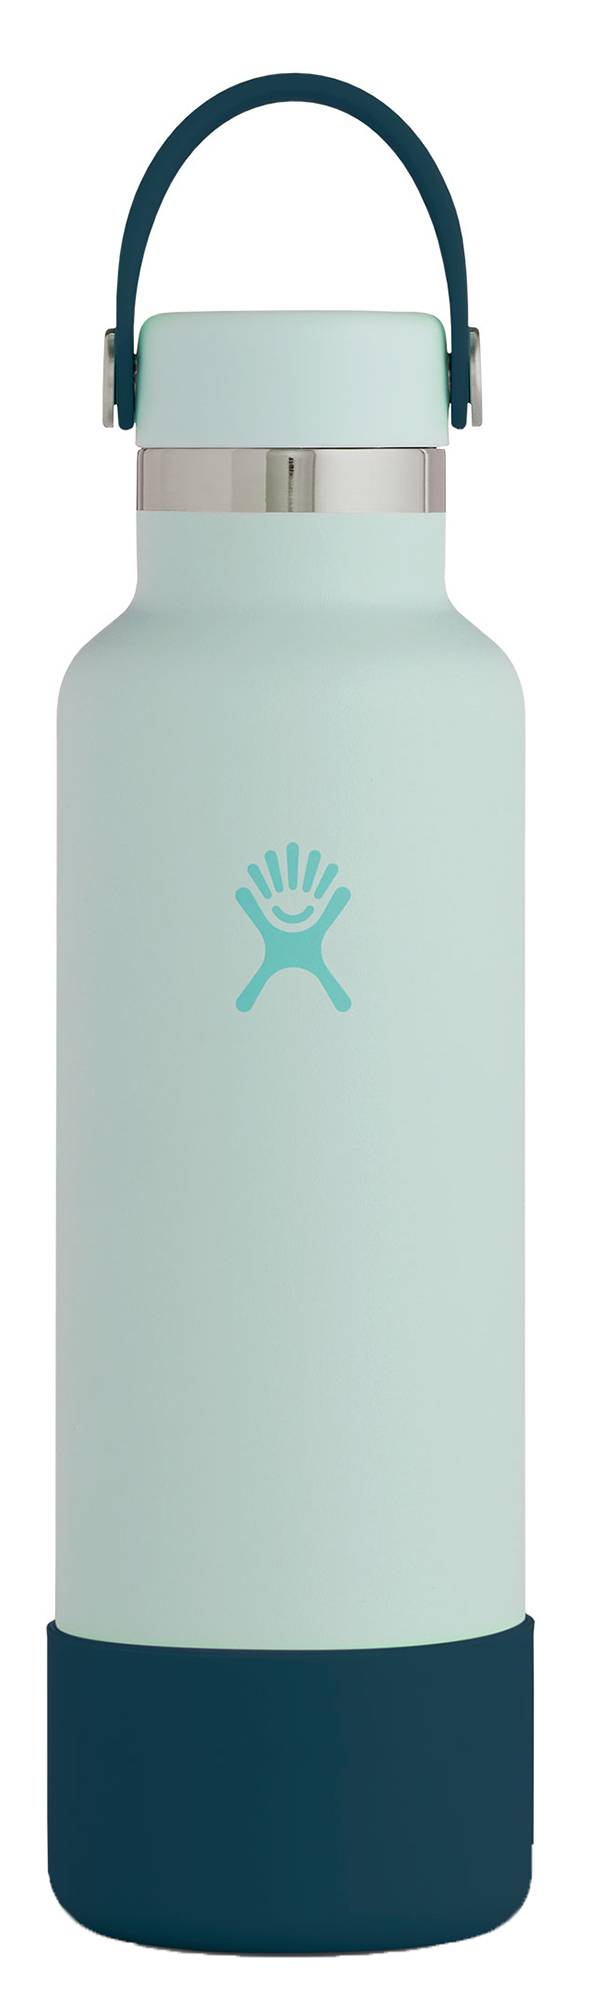 Hydro Flask Movement Collection 21 oz. Standard Mouth Bottle product image